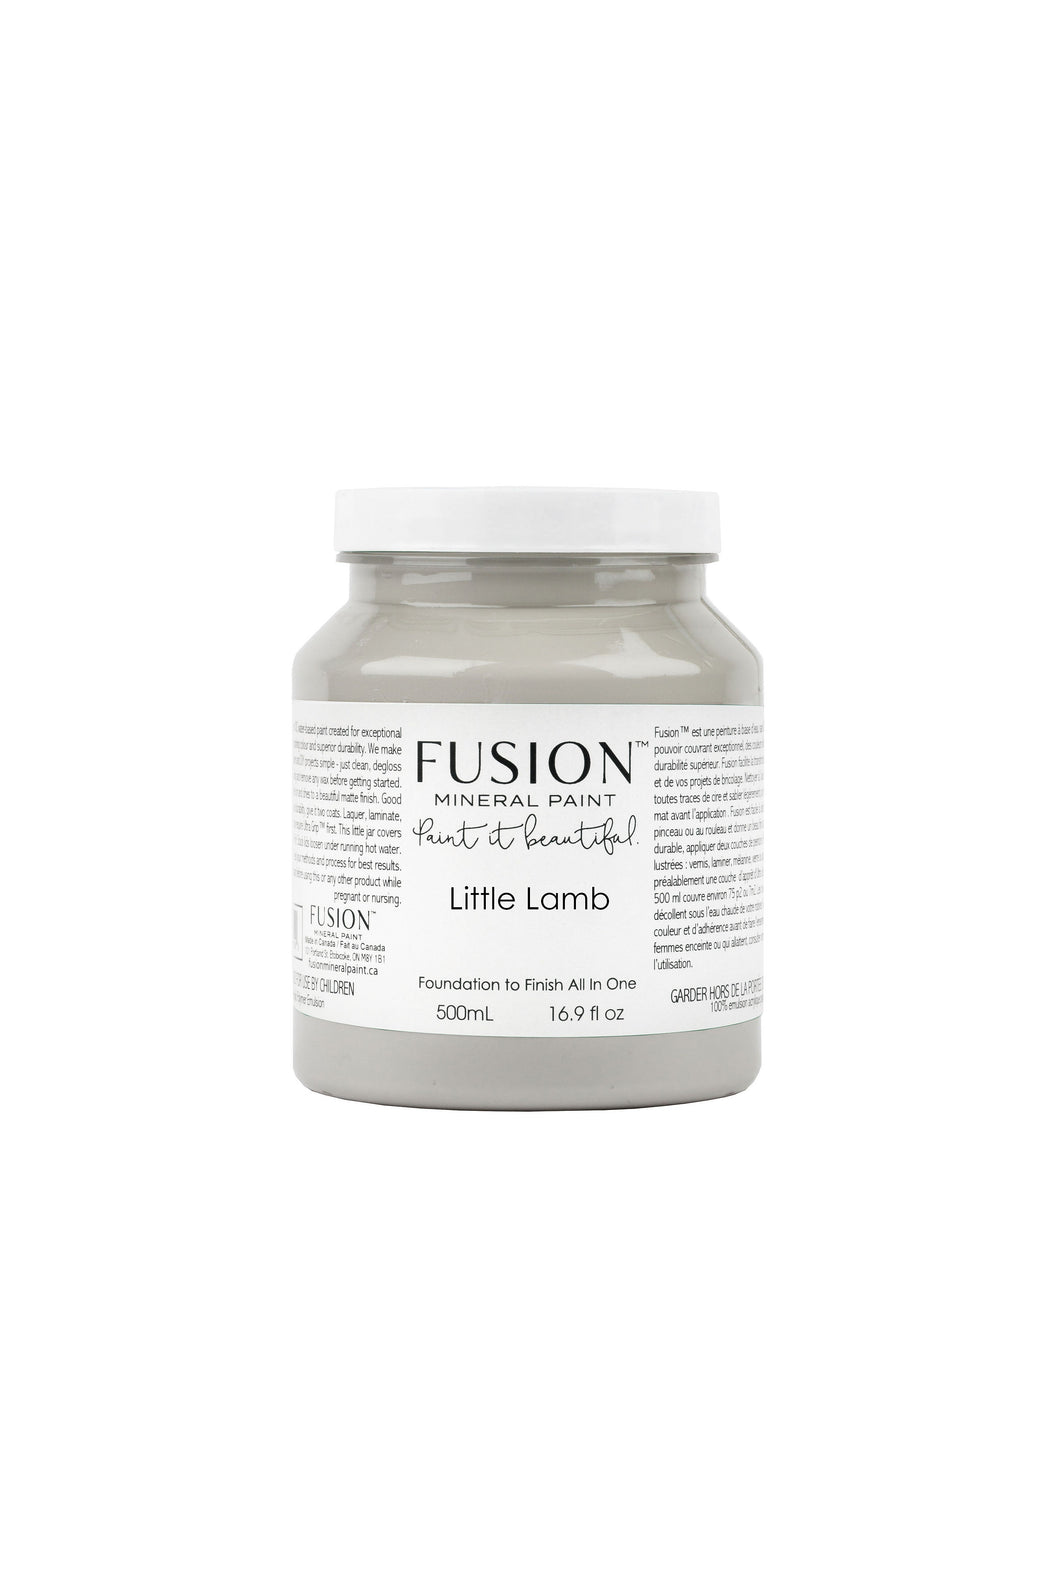 Fusion Mineral Paint - Little Lamb $40.00